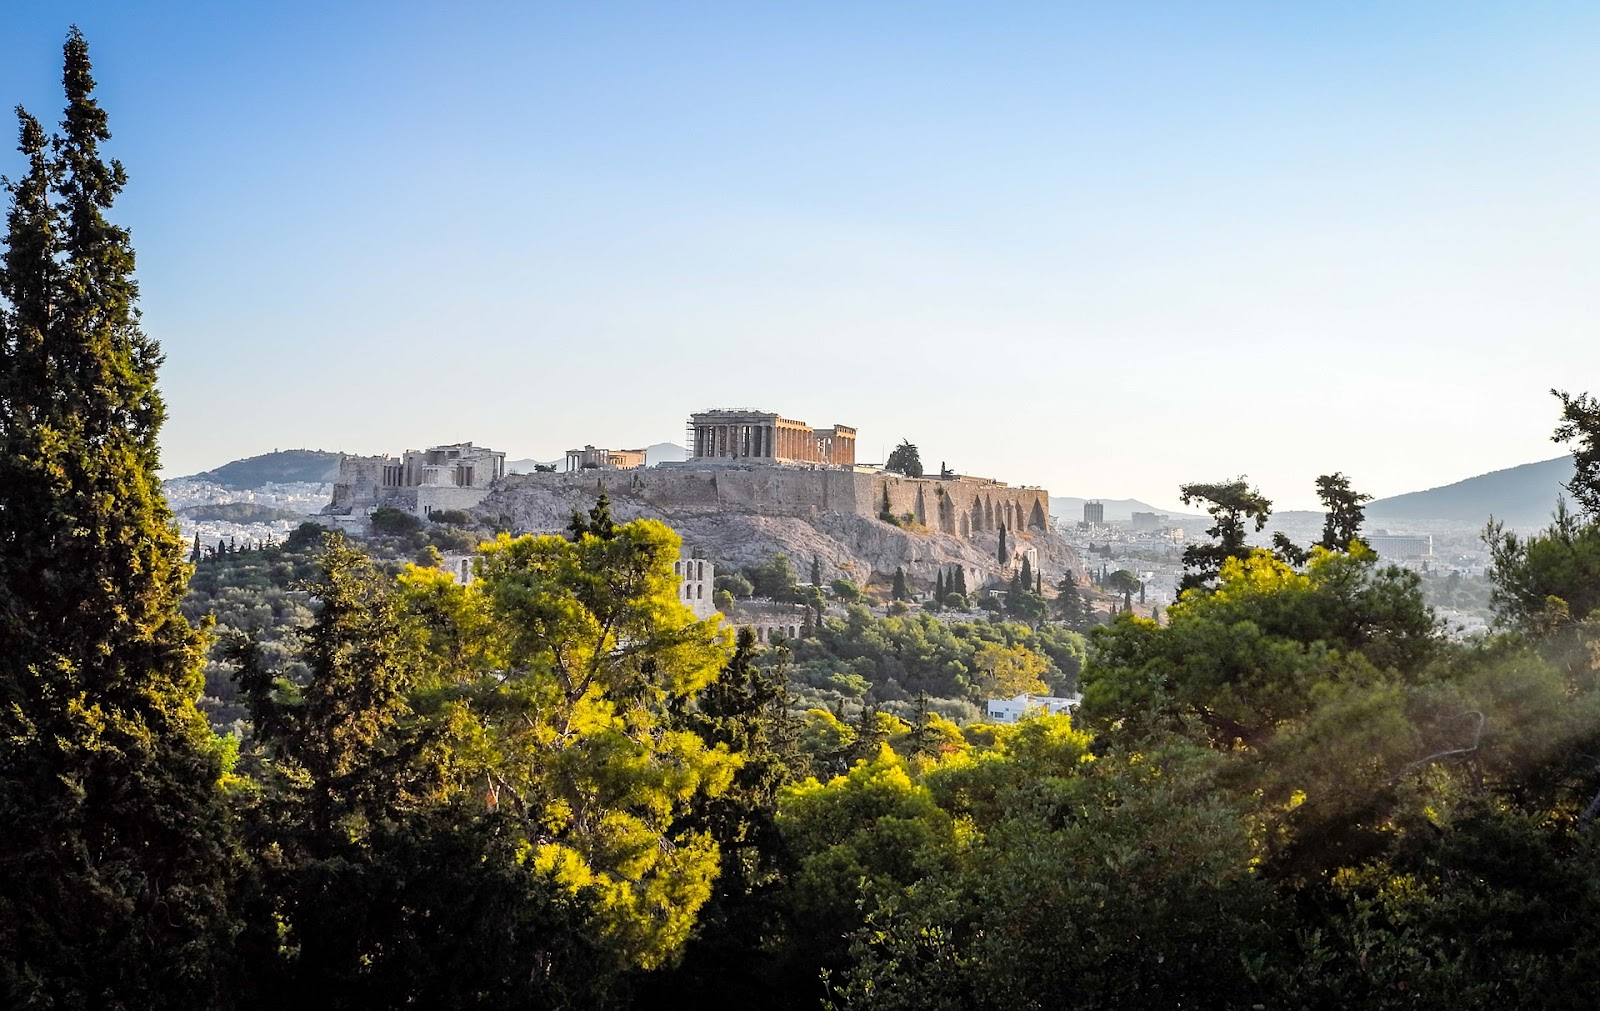 acropolis athens monumental ancient parthenon, seen behind green trees and athens skyline on a clear day.